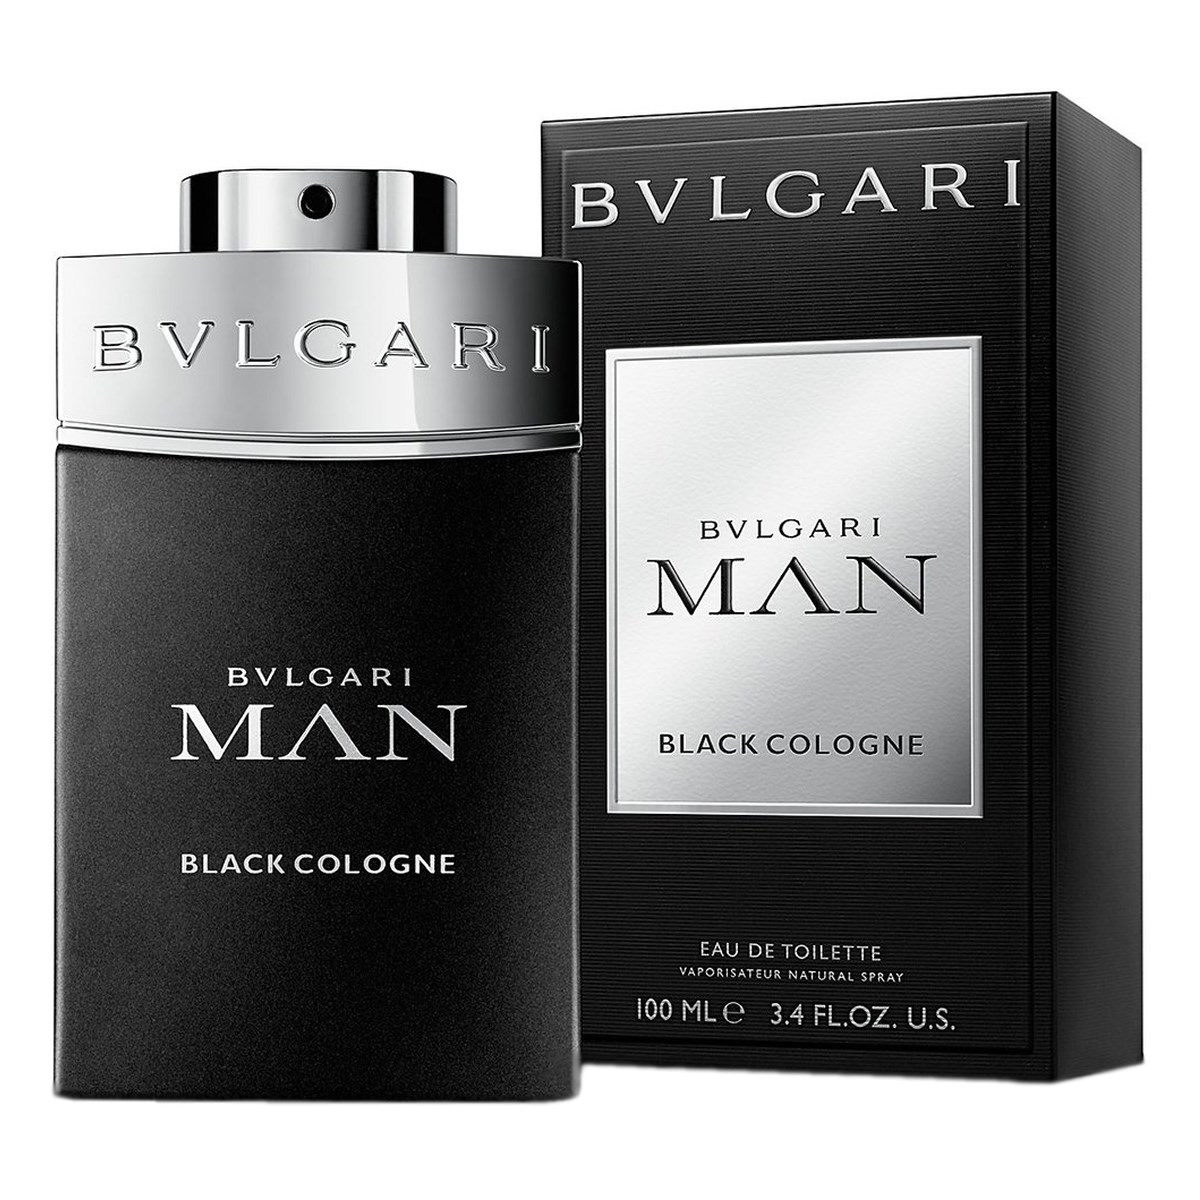 Bvlgari Man Black Cologne EDT For Him